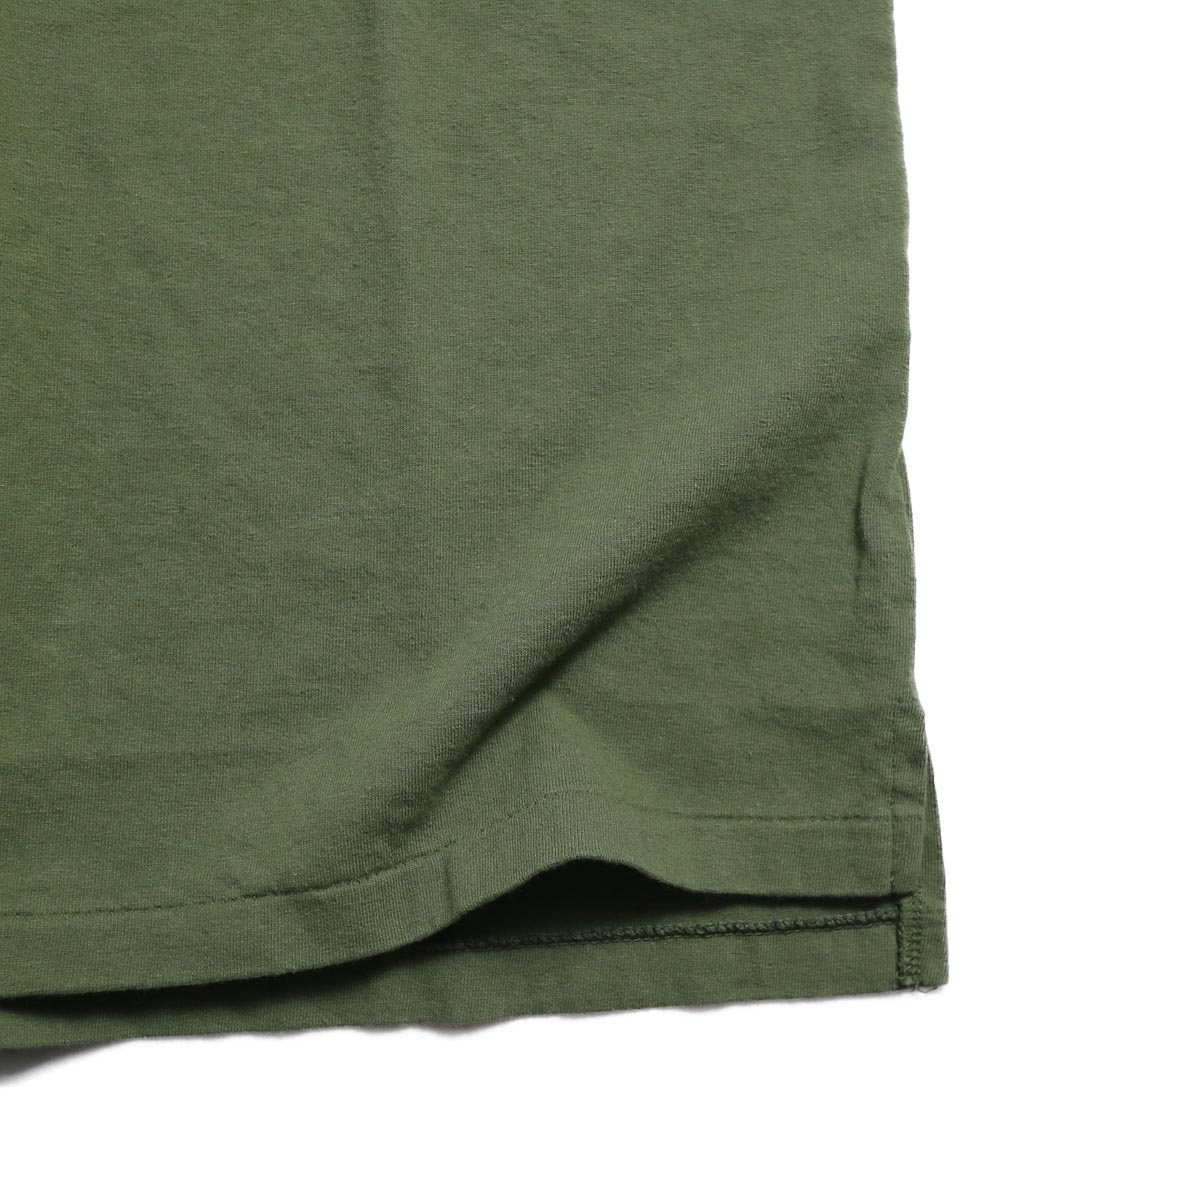 ENGINEERED GARMENTS Workaday / Crossover Neck Pocket Tee -Olive スリット